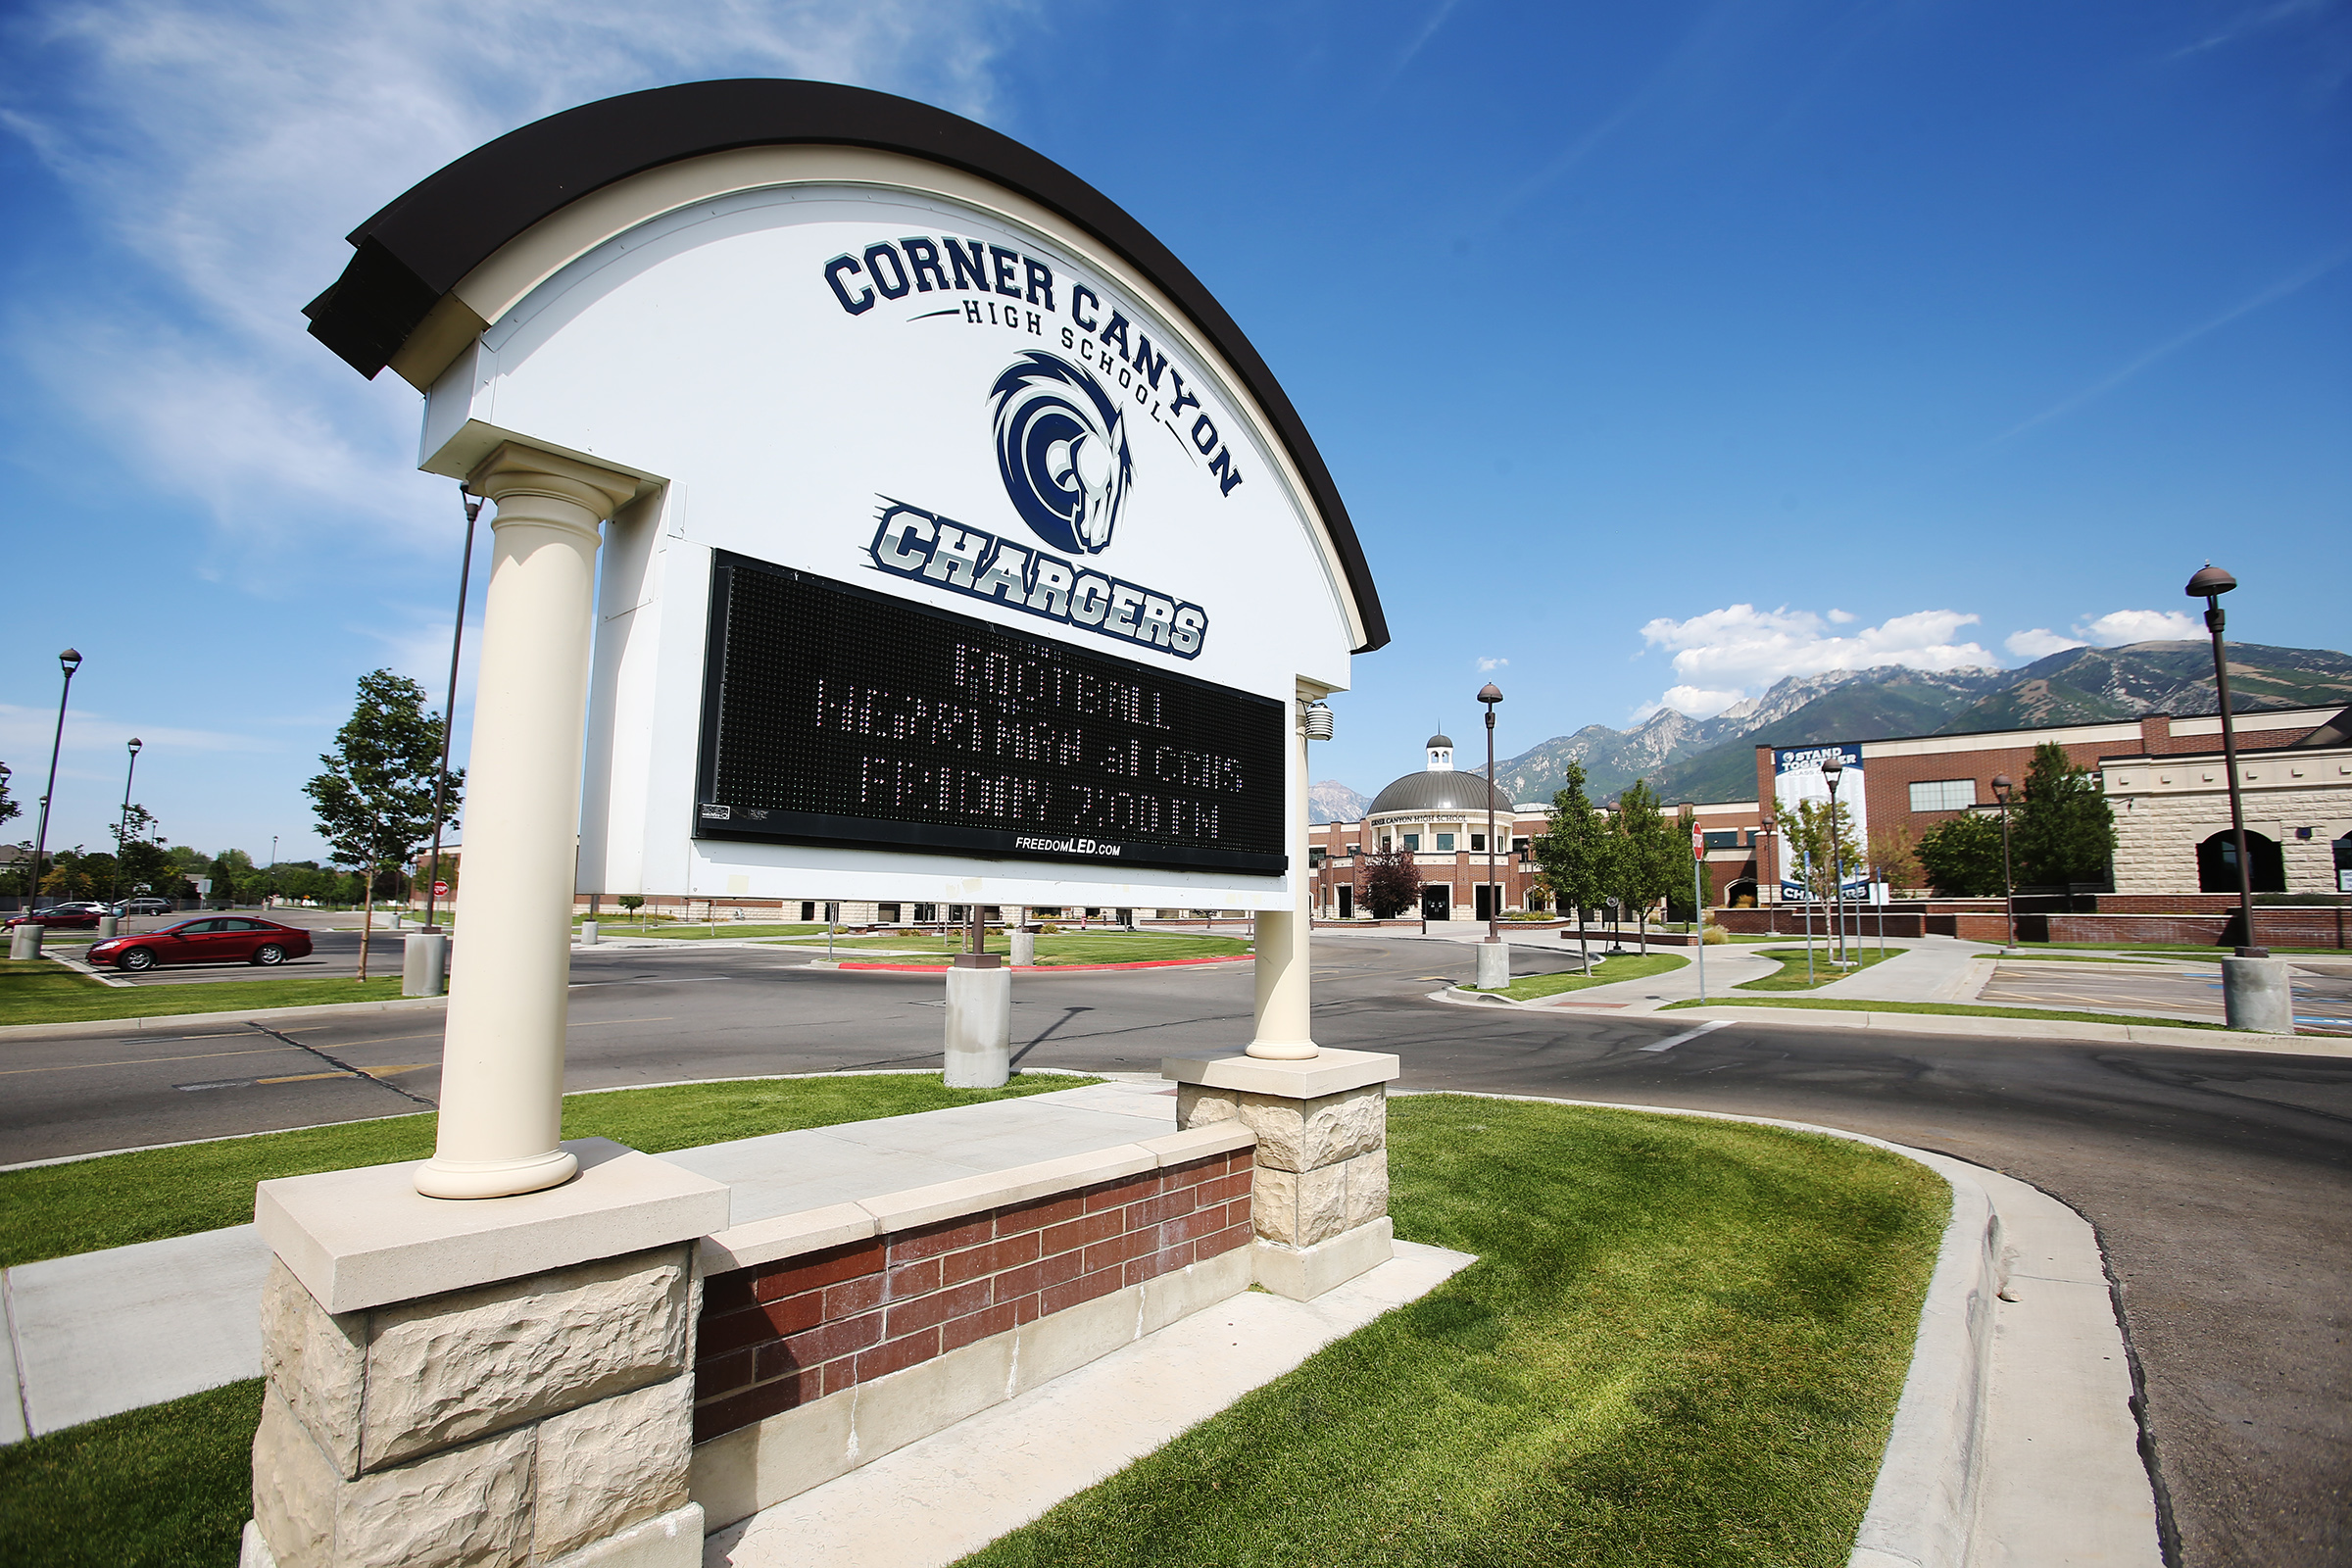 Corner Canyon High School in Draper is pictured on Monday, Aug. 17, 2020.